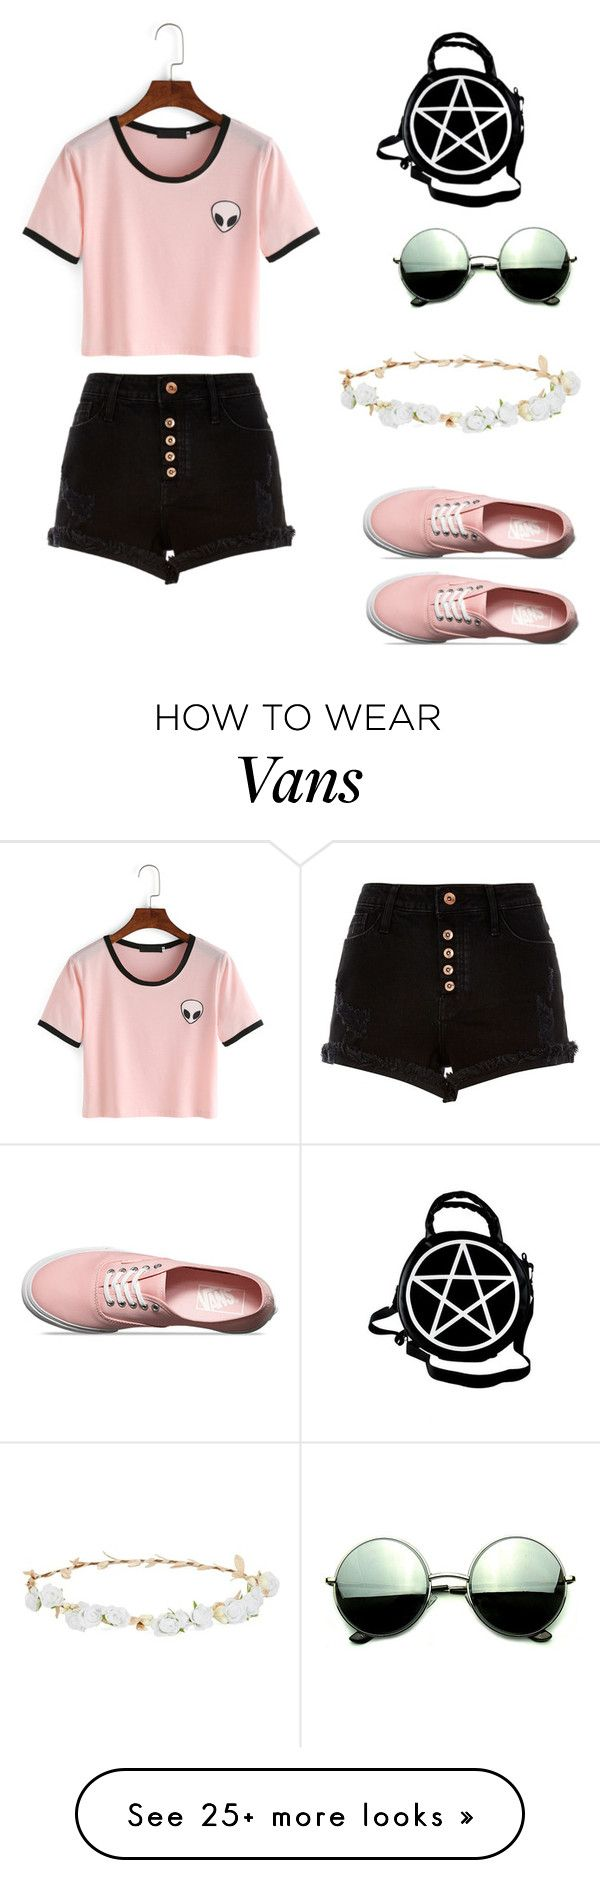 """""""Tumblr girl"""" by lilybluemc on Polyvore featuring River Island, Vans, Kill Star, Revo and Robert Rose"""